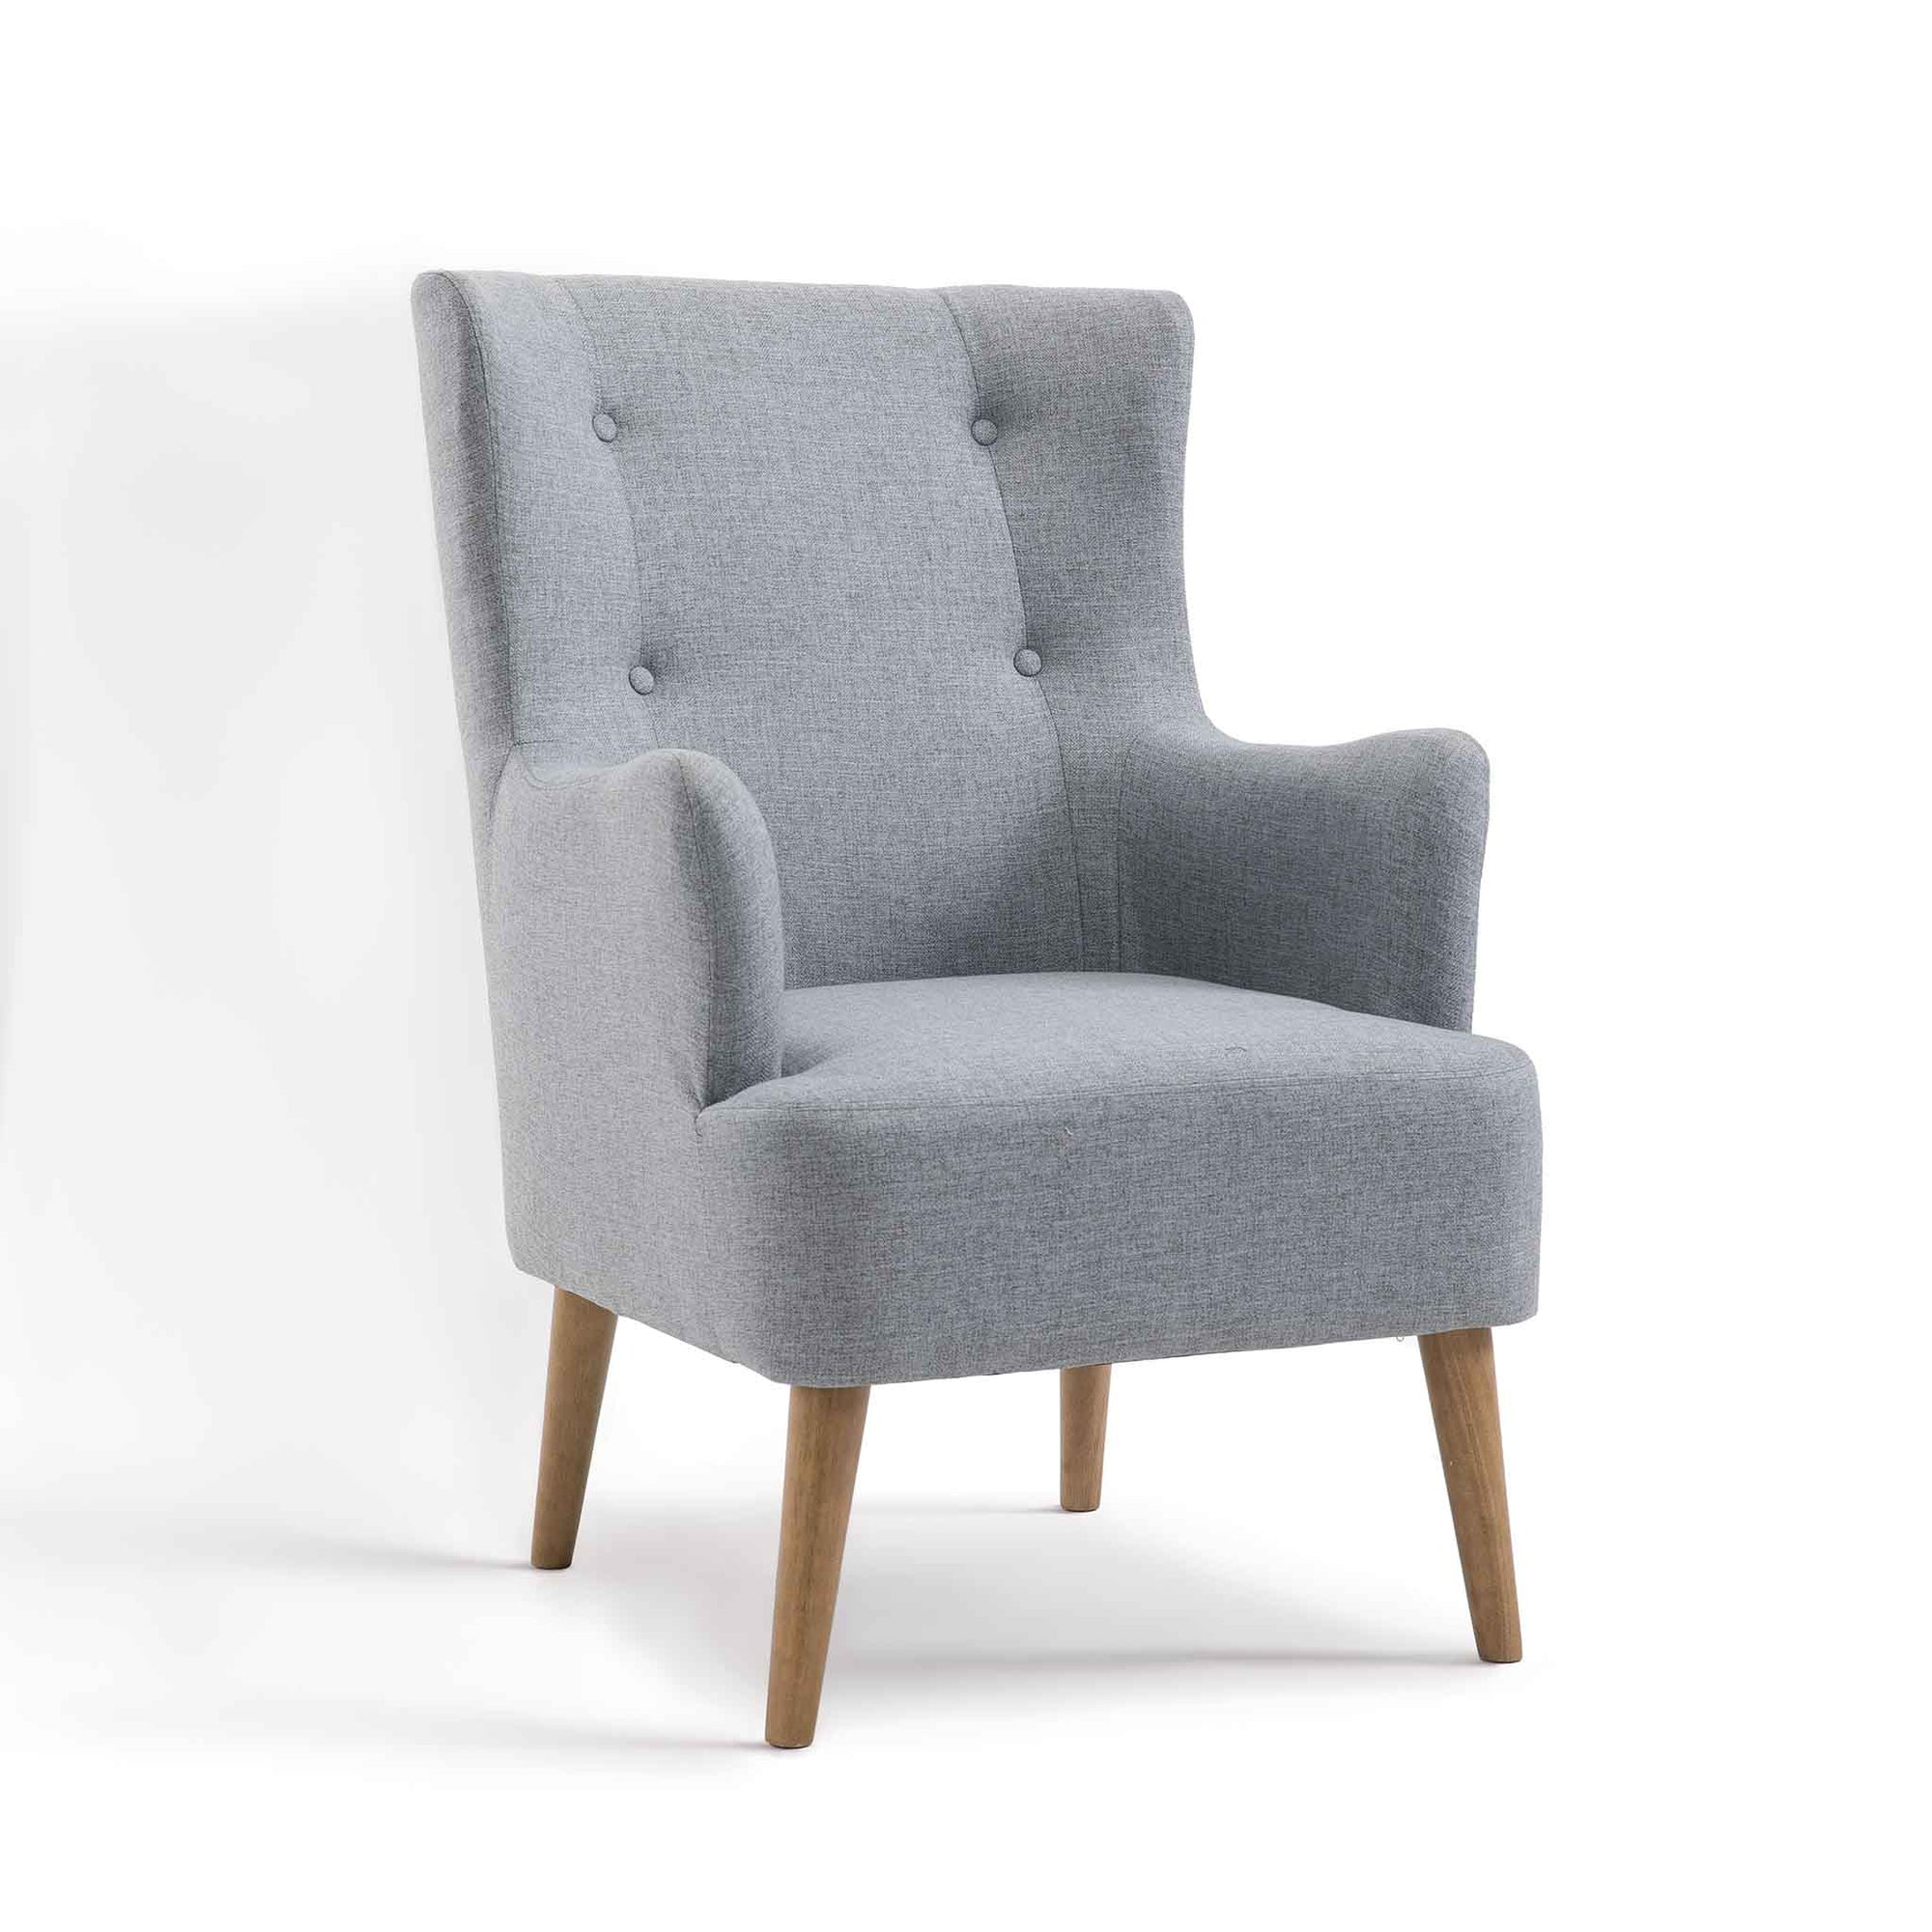 Bergen Grey Fabric Armchair from Roseland Furniture